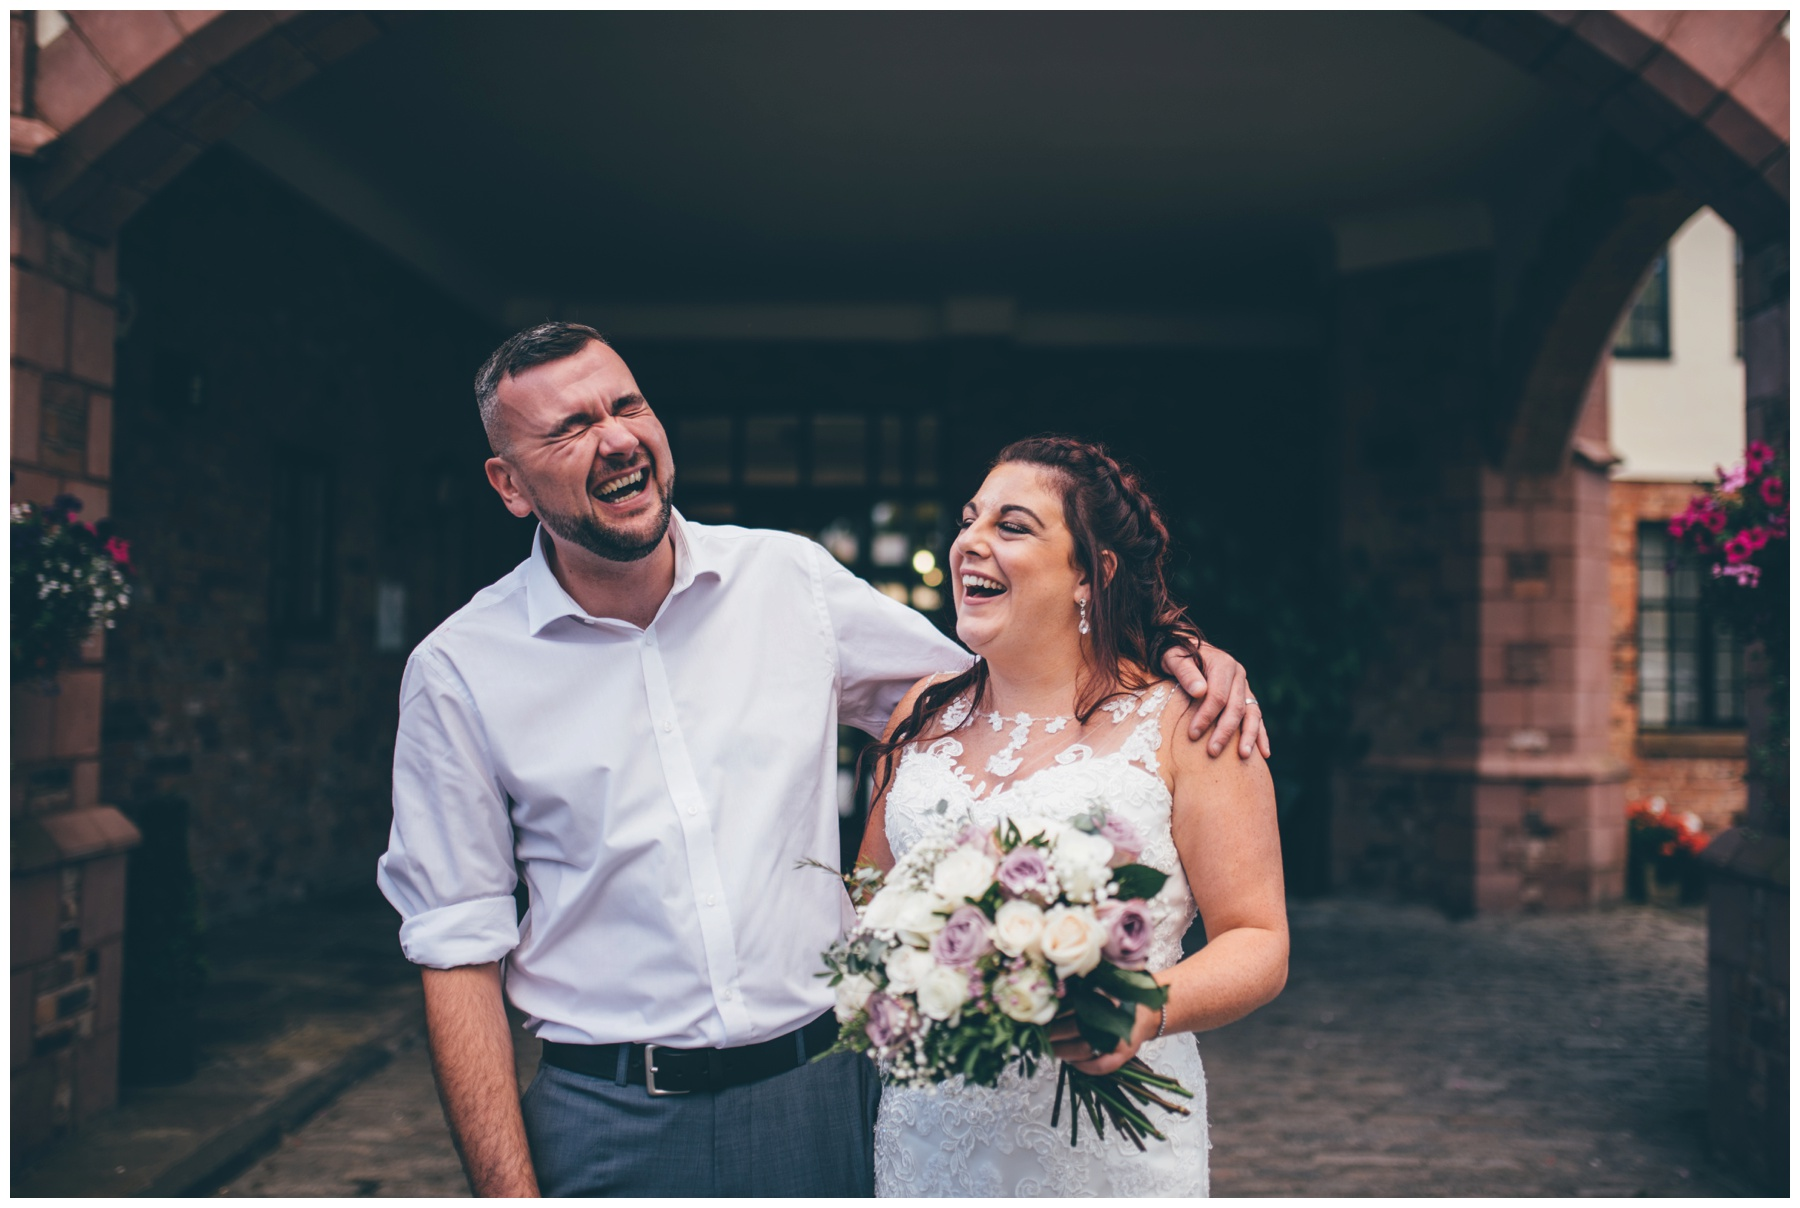 Bride and Groom crack up laughing together after their wedding at Crabwall Manor just outside Chester in Cheshire.